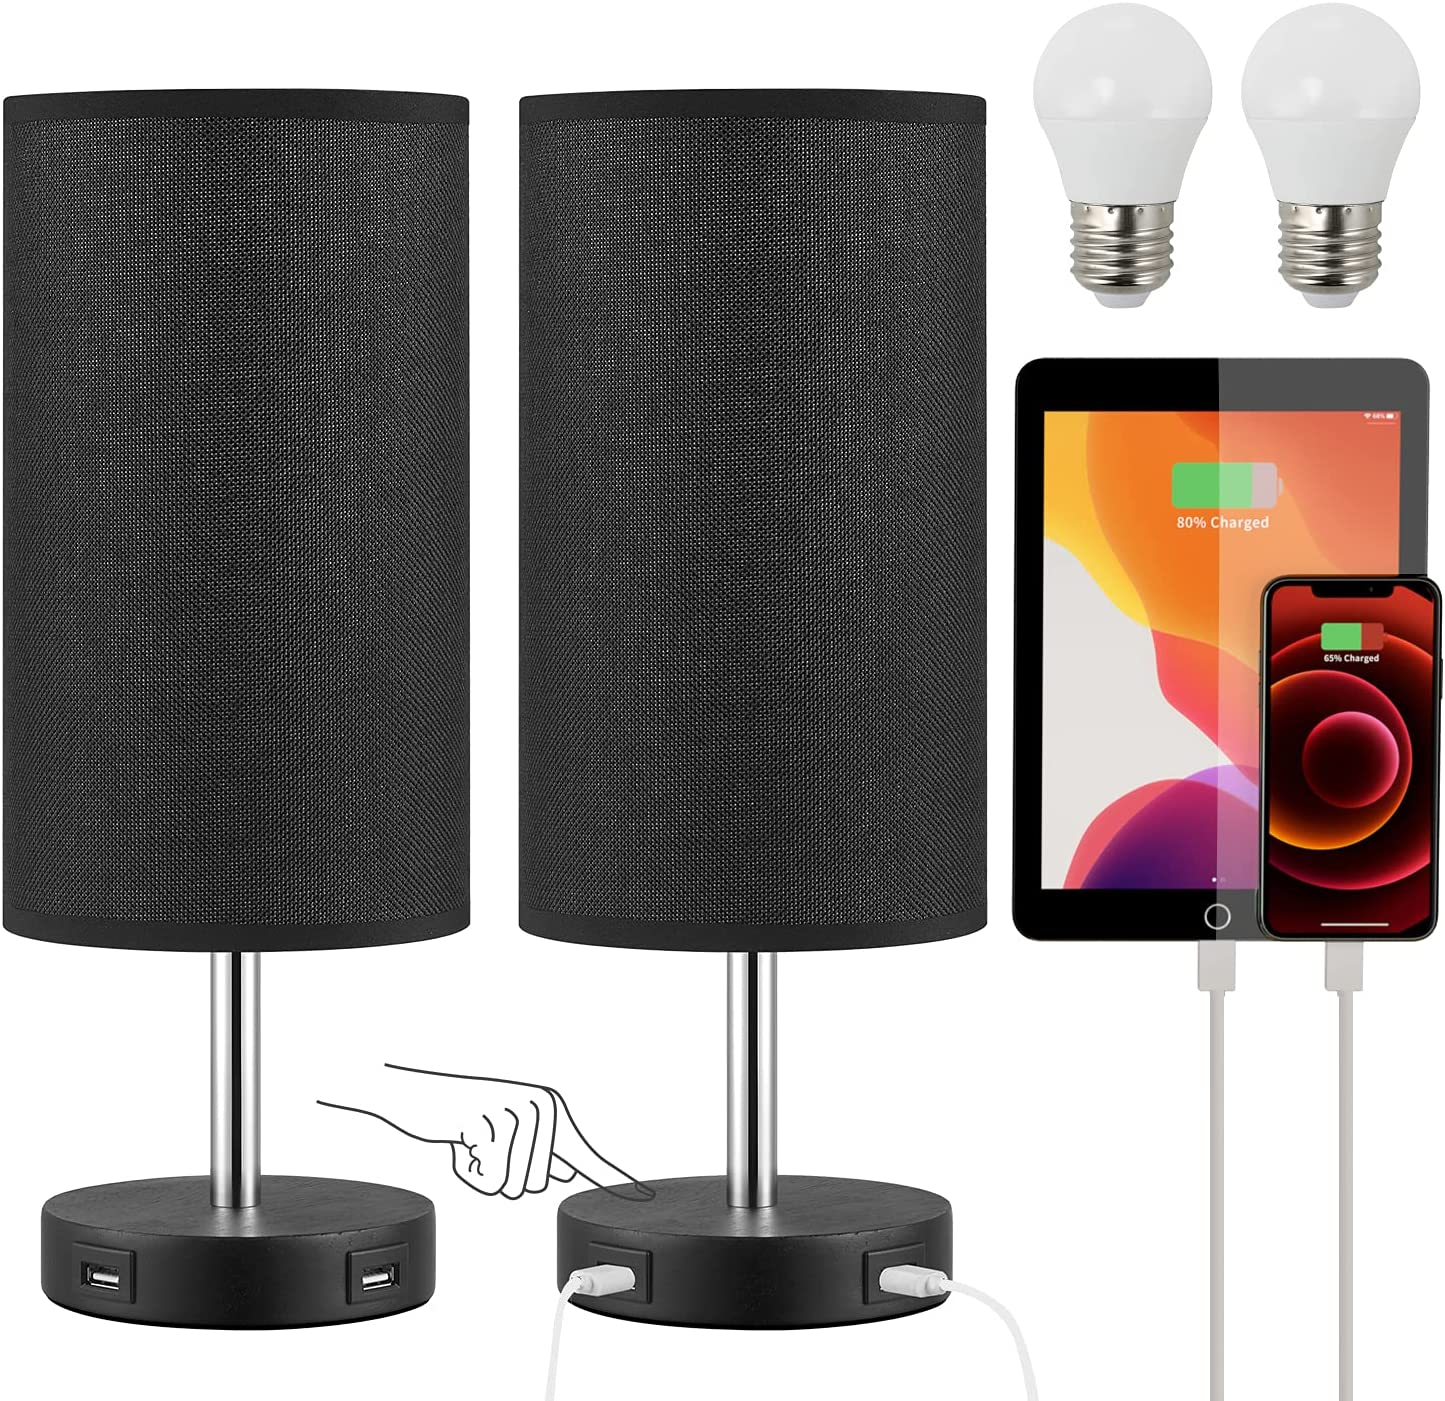 Black Touch Control USB Table Lamps for Bedrooms Seealle Stepless Dimmable Bedside Lamp Set of 2 with Daylight White Light Bulb, Minimalist Decor Modern Desk Lamps for Bedrooms Nightstand Living Rooms